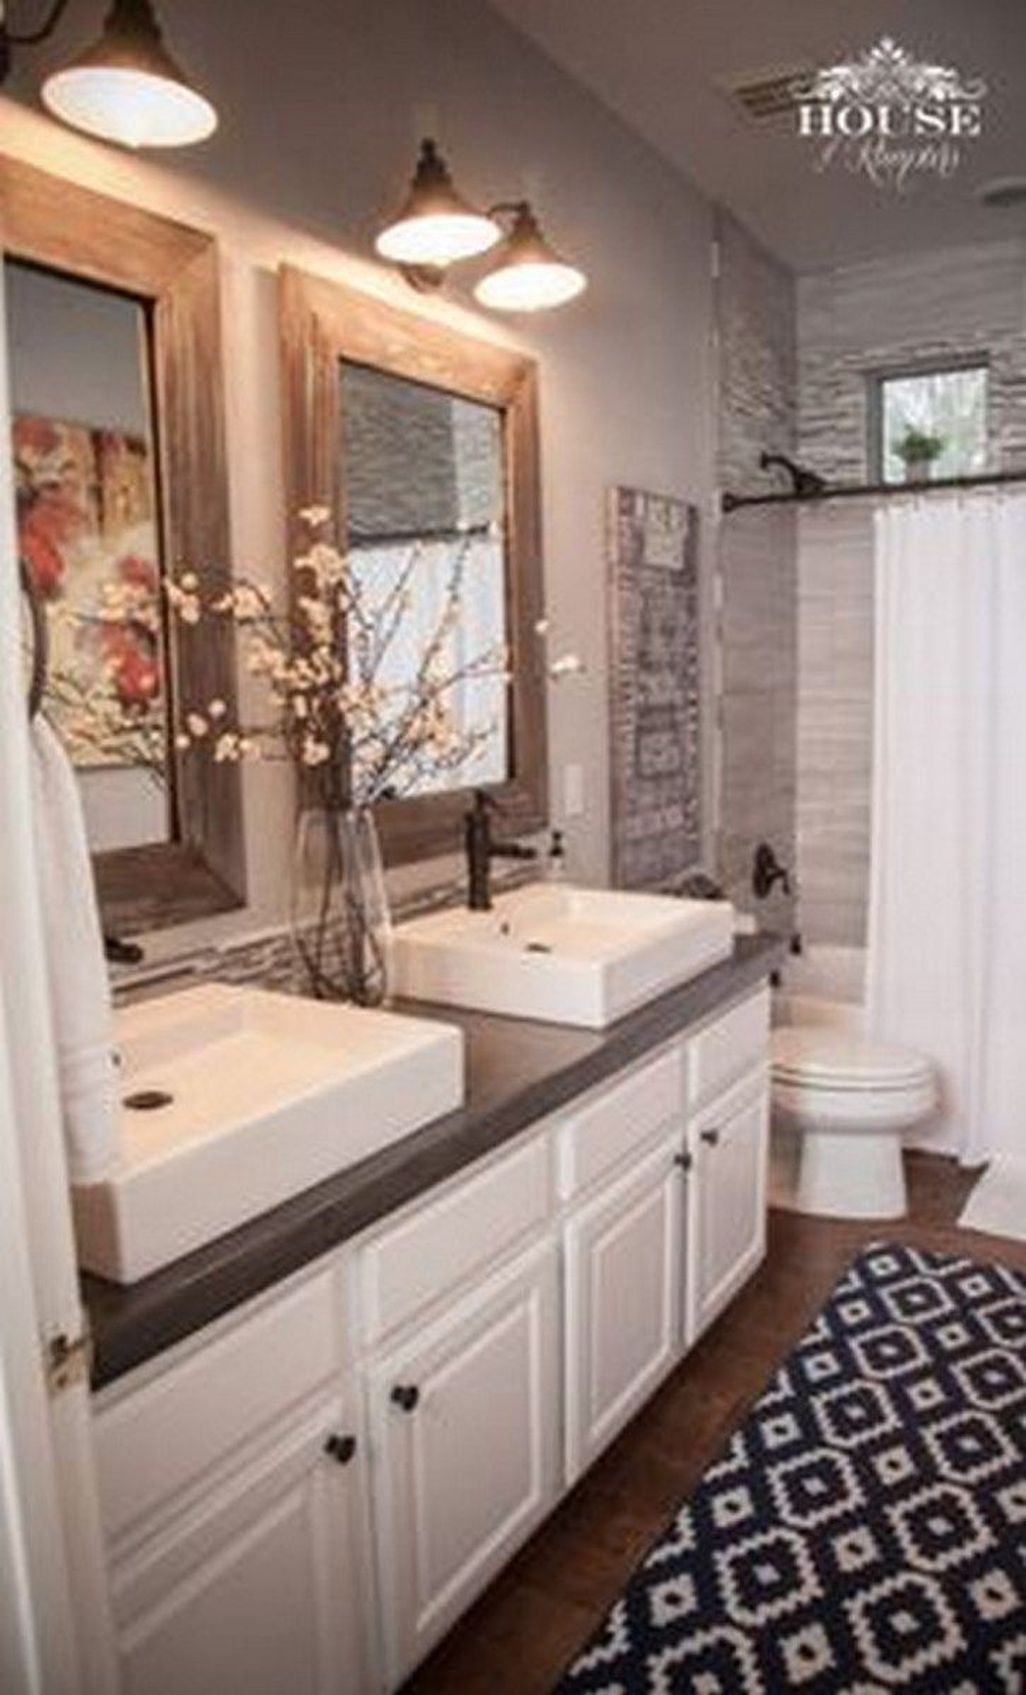 photos of remodeled bathrooms%0A Beautiful Master Bathroom Remodel Ideas